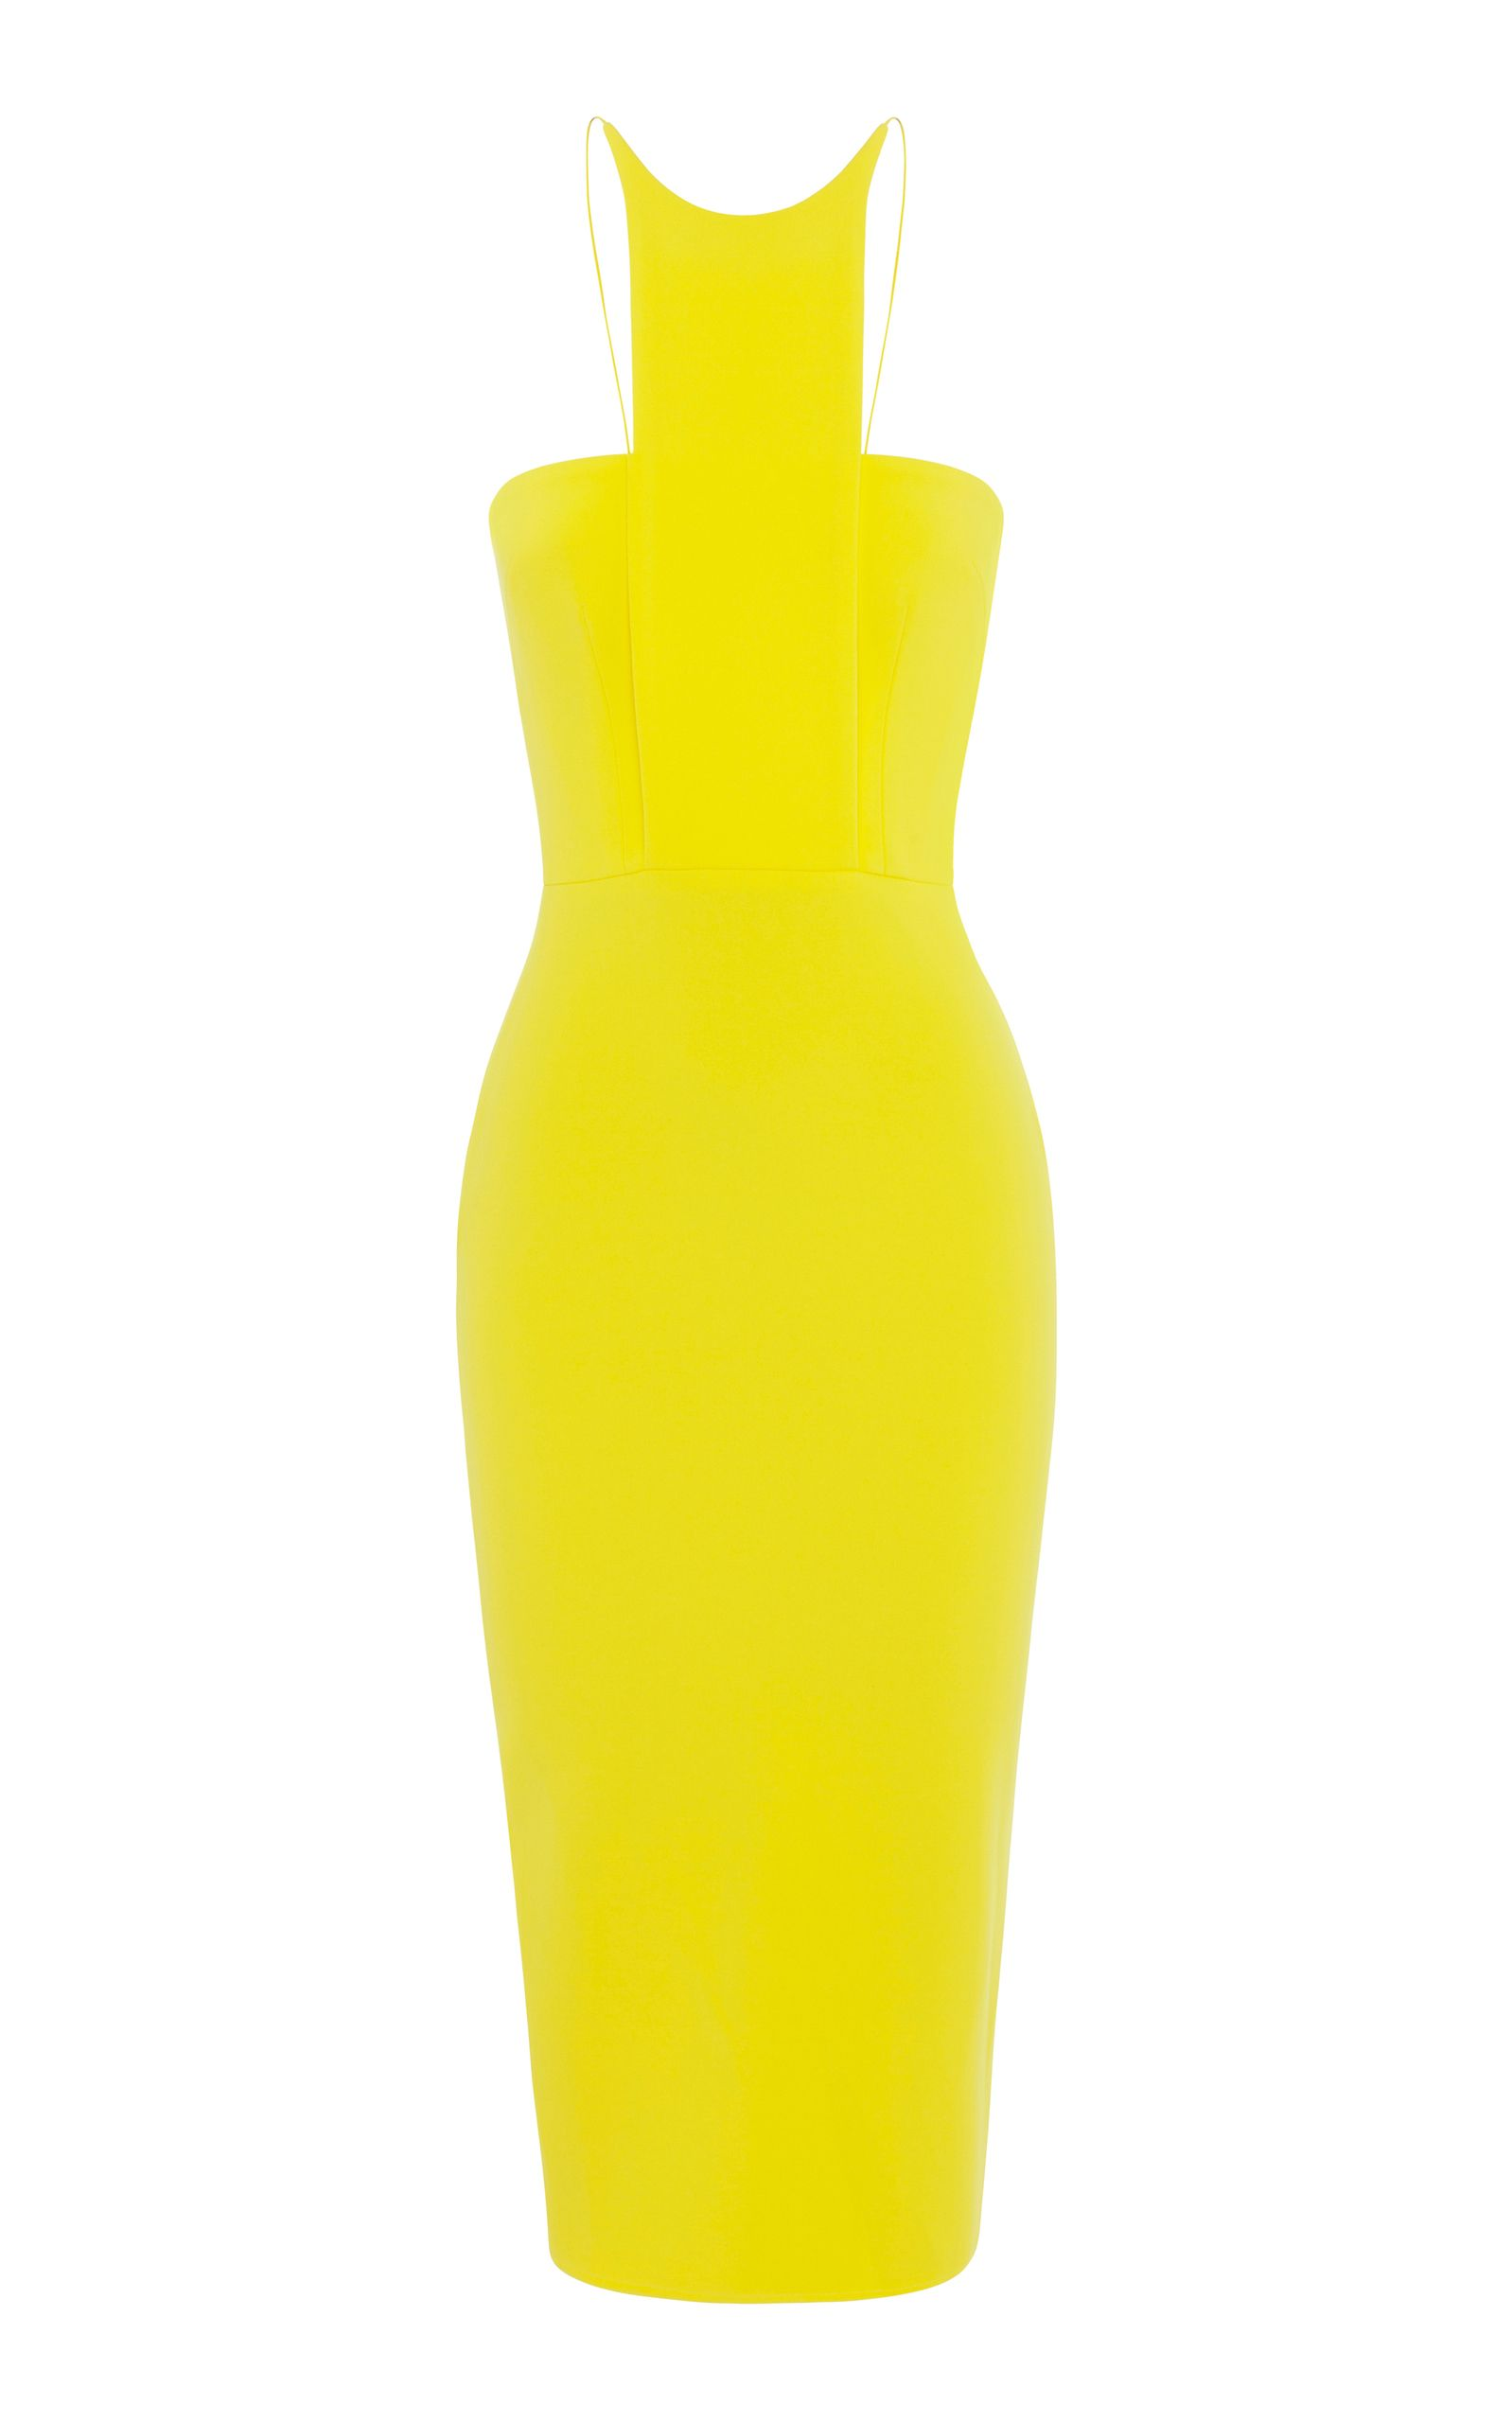 square neck fitted dress - Yellow & Orange Alex Perry 2018 New For Sale PPftliajj6